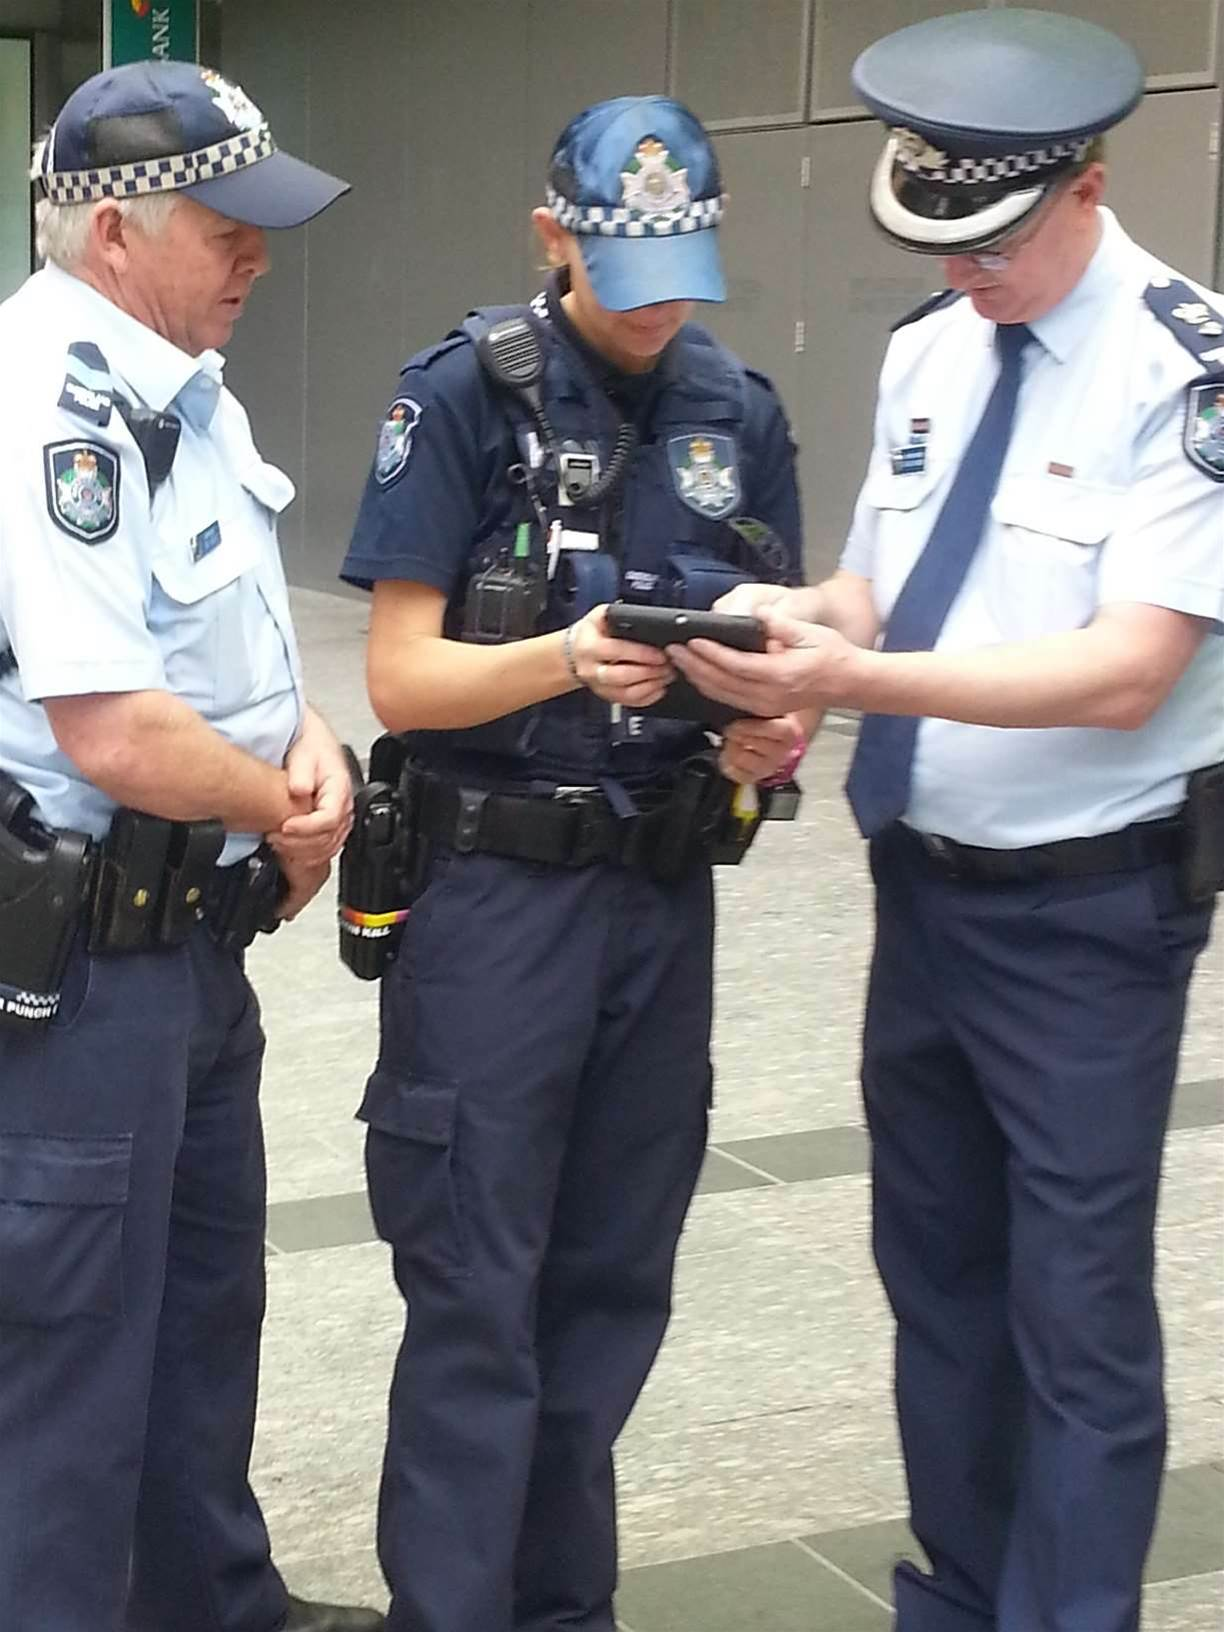 Qld Police brings data to the field